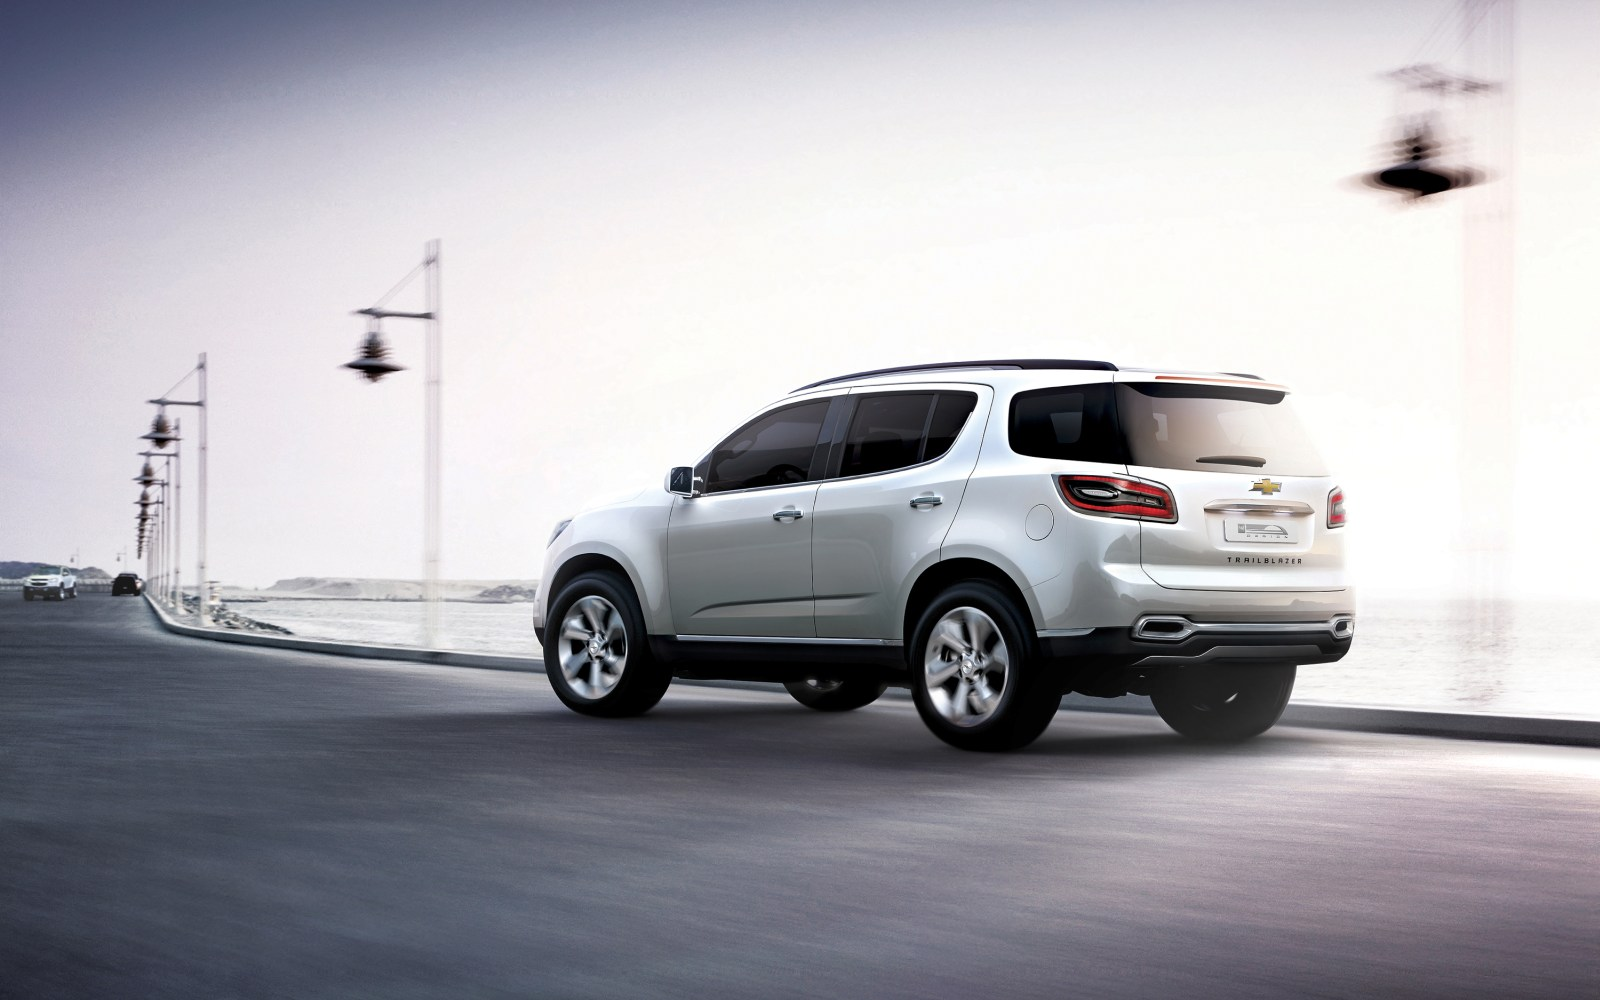 Chevrolet Trailblazer 2012 foto - 3